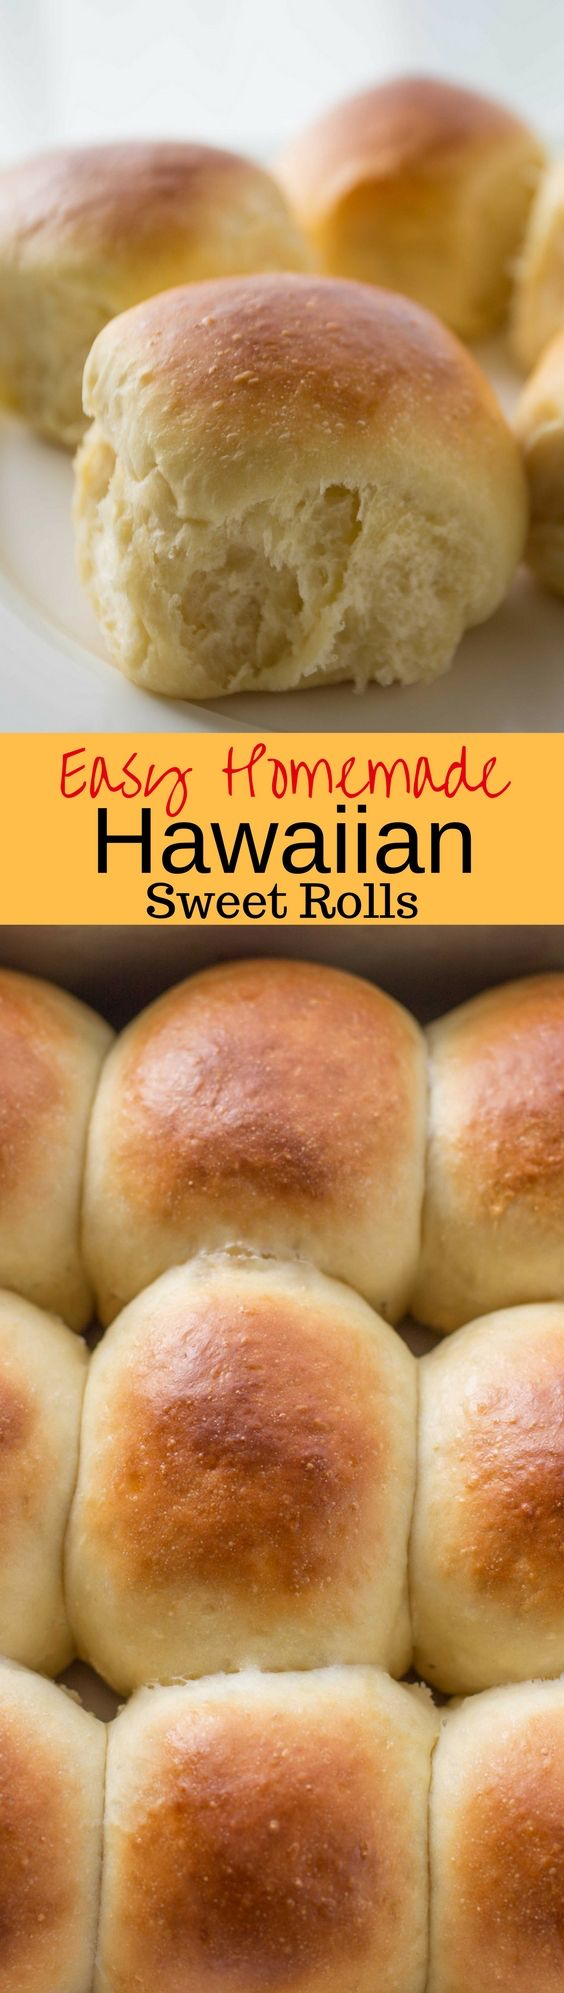 Easy Homemade Hawaiian Sweet Rolls -A lightly sweet roll flavored with pineapple juice for a hearty, fluffy, homemade treat that comes together in minutes. Terrific topped with ham, hot pepper jelly and your favorite cheese